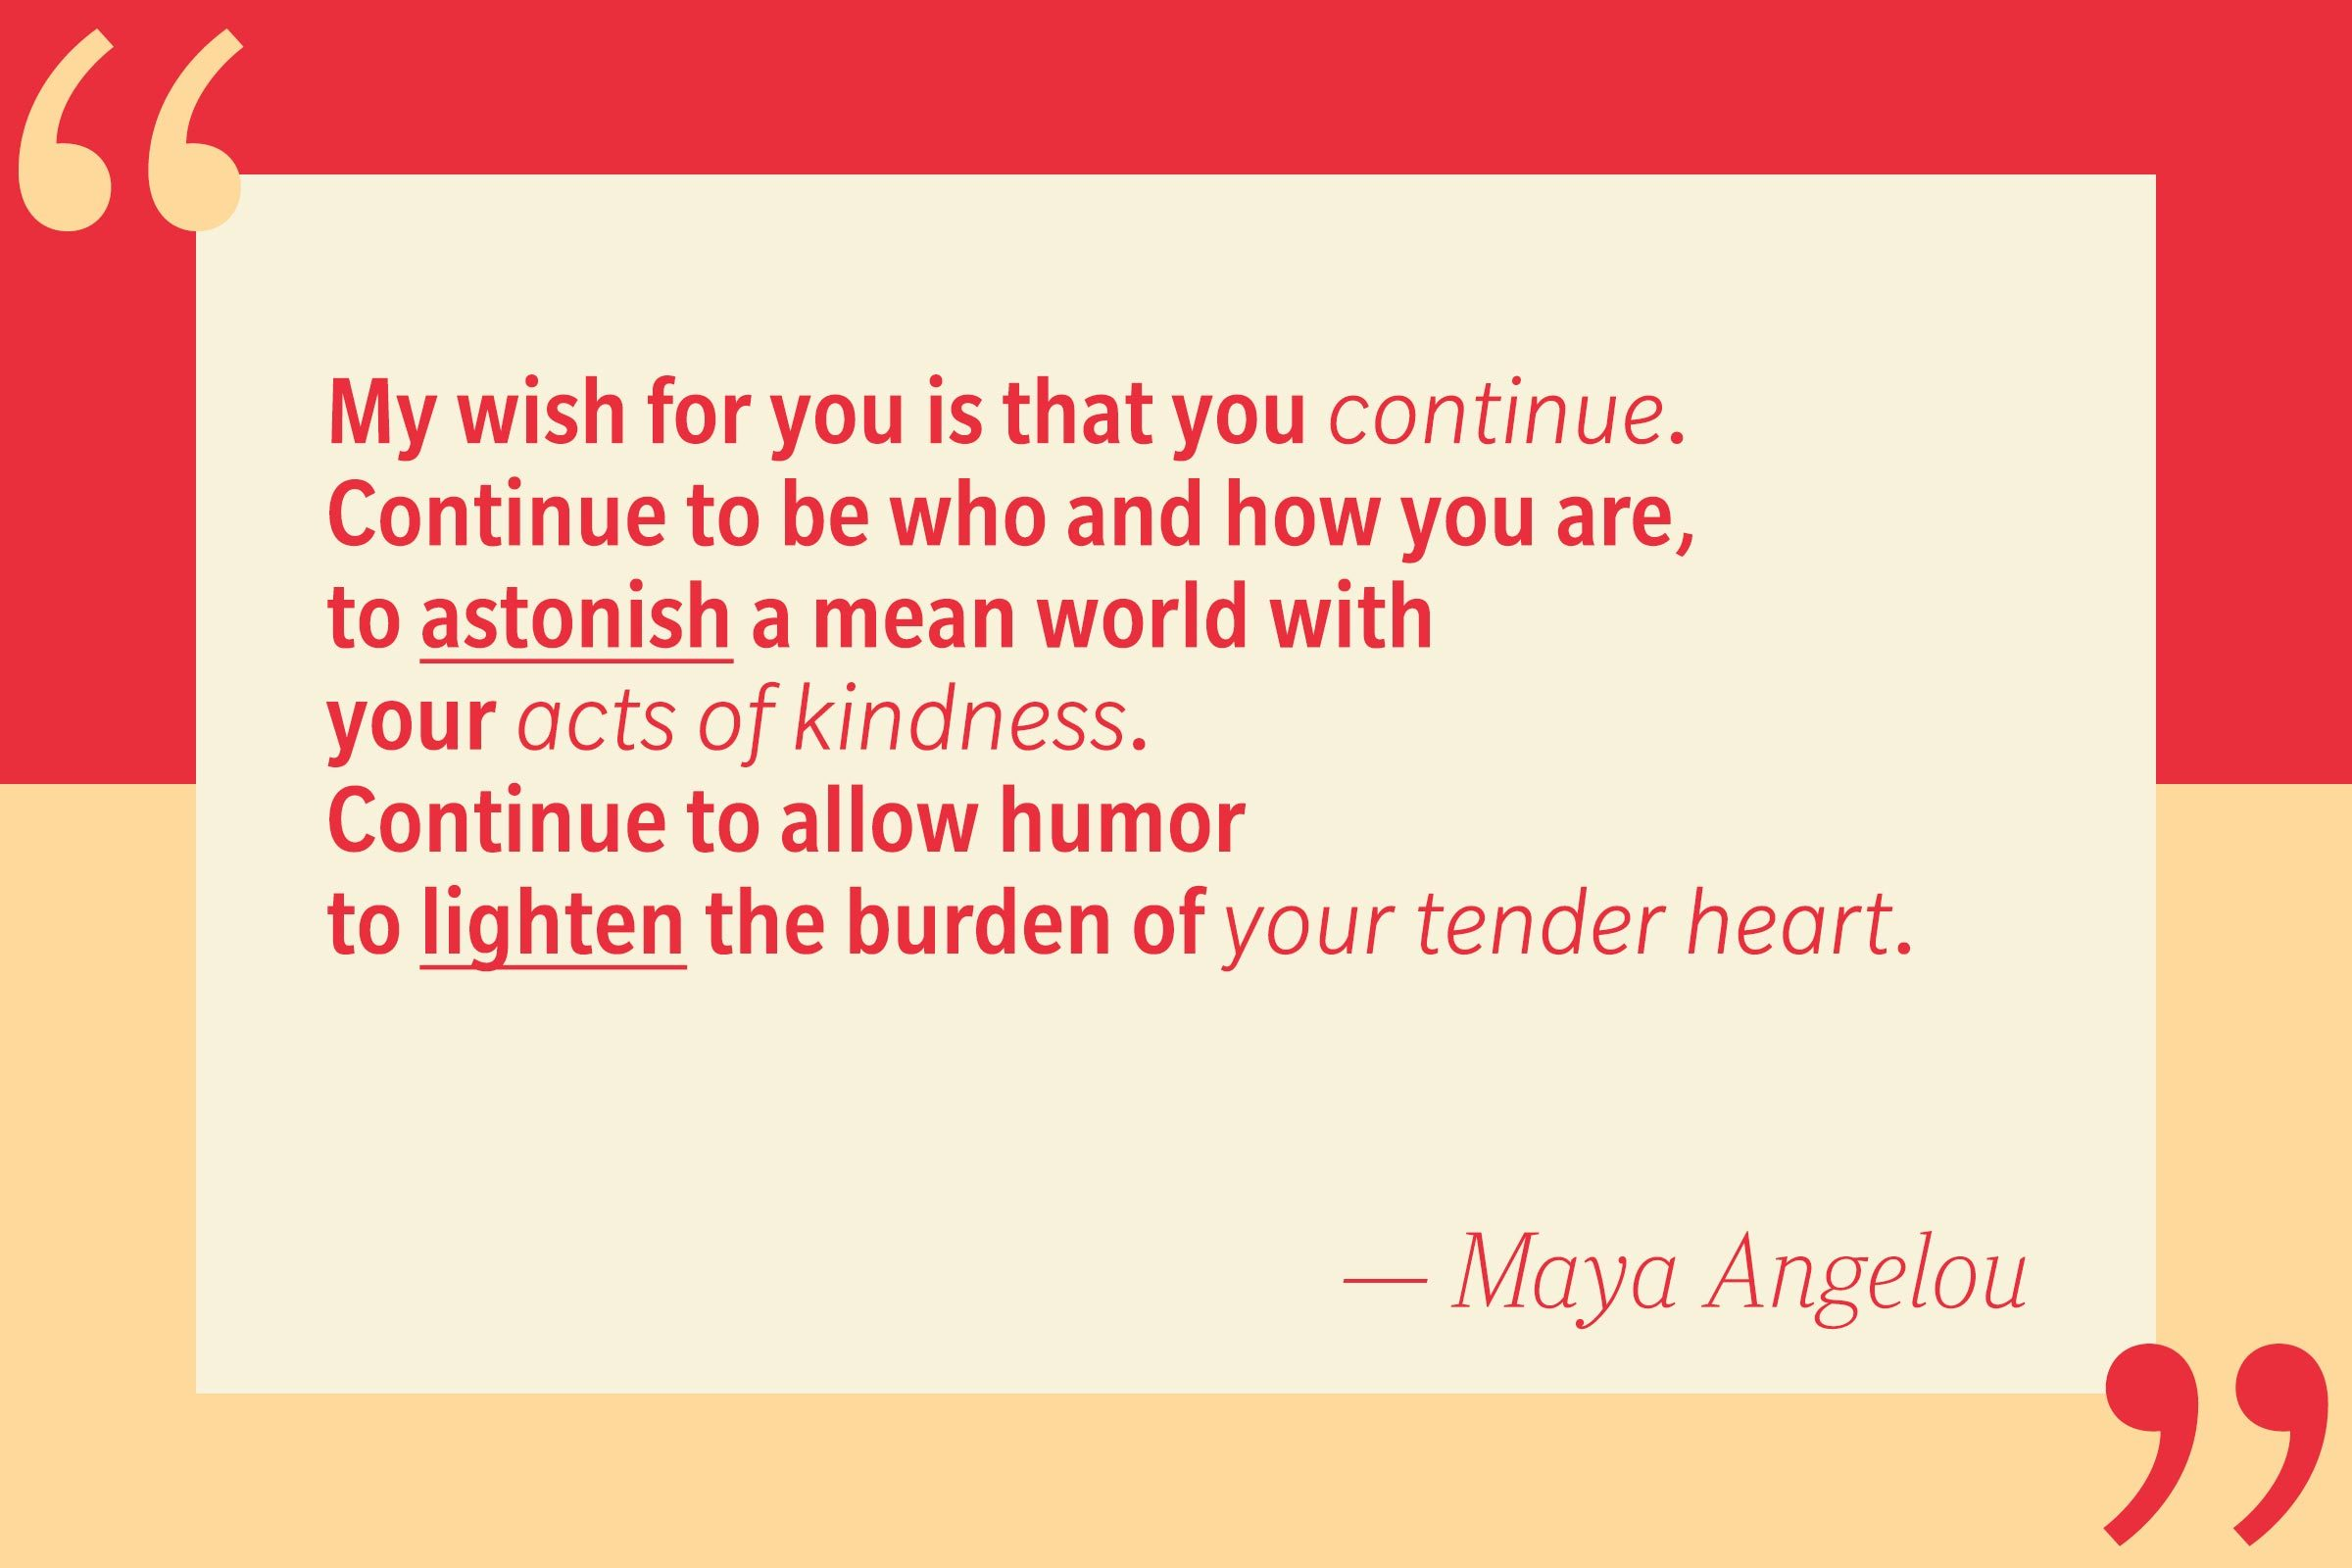 My wish for you is that you continue. Continue to be who and how you are, to astonish a mean world with your acts of kindness. Continue to allow humor to lighten the burden of your tender heart. — Maya Angelou